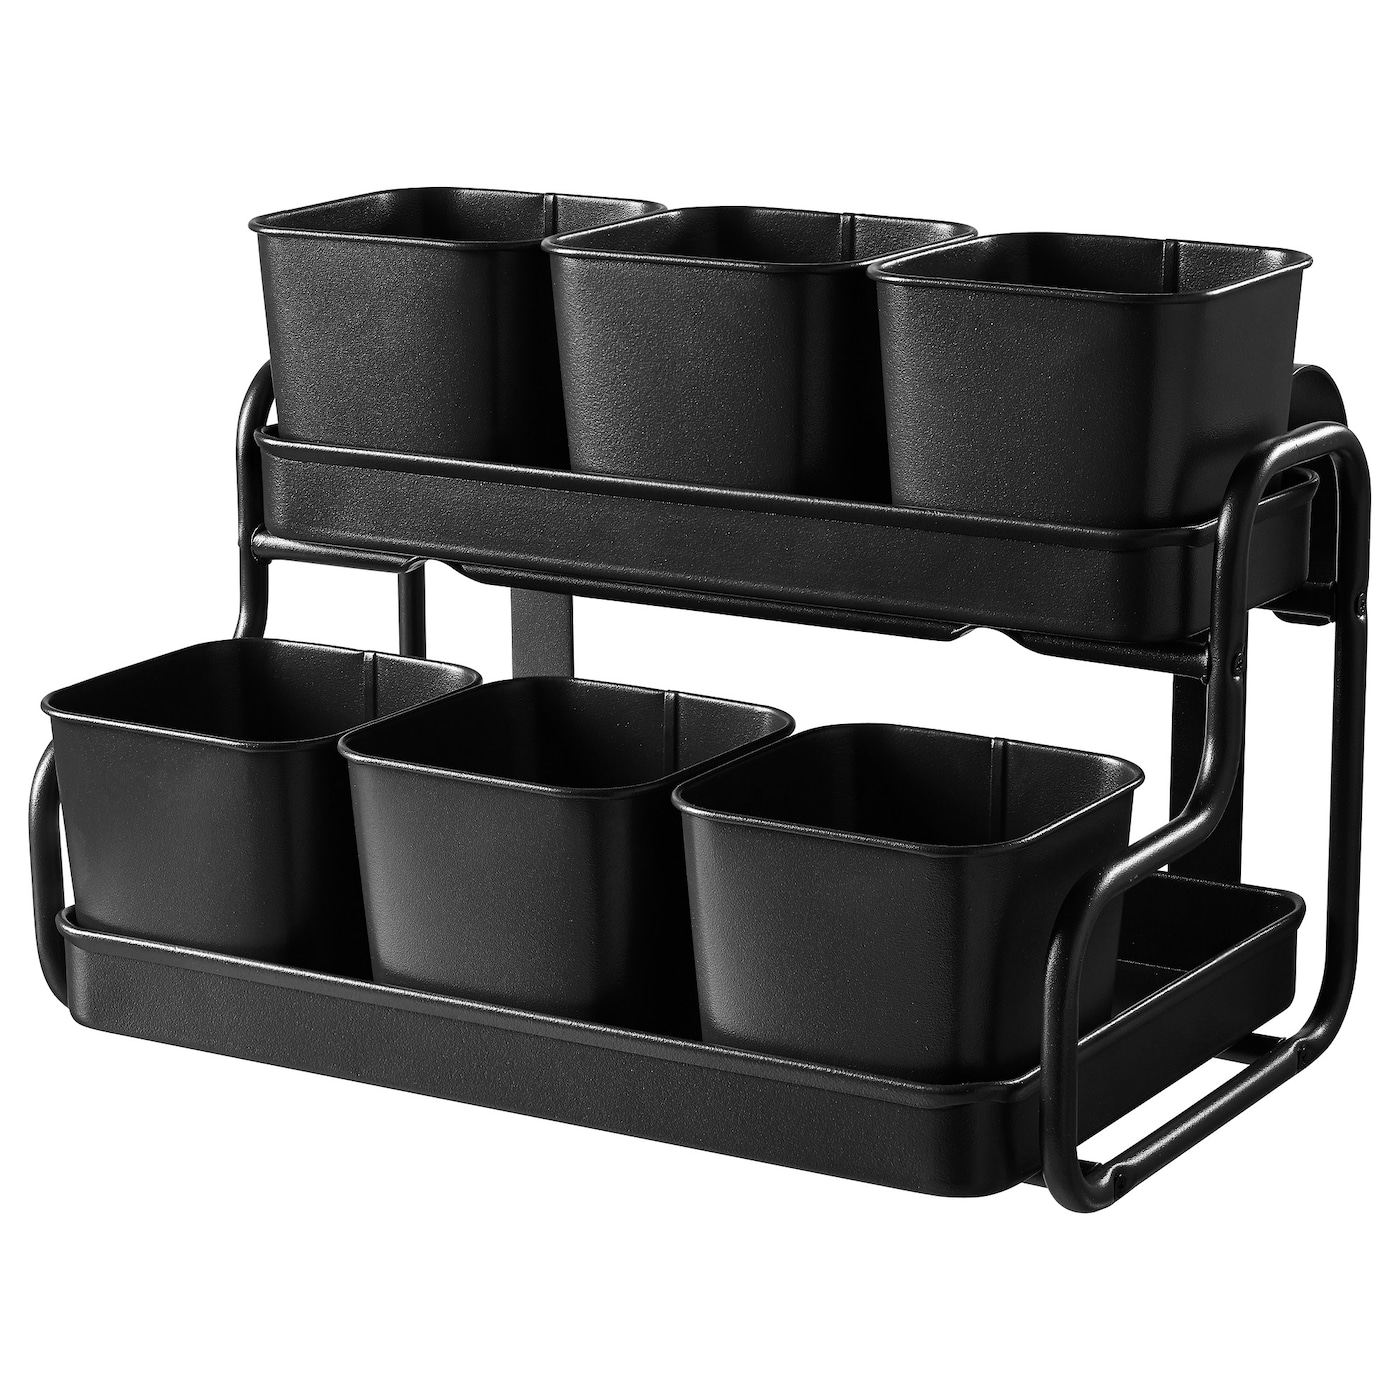 IKEA SOCKER plant pot with holder